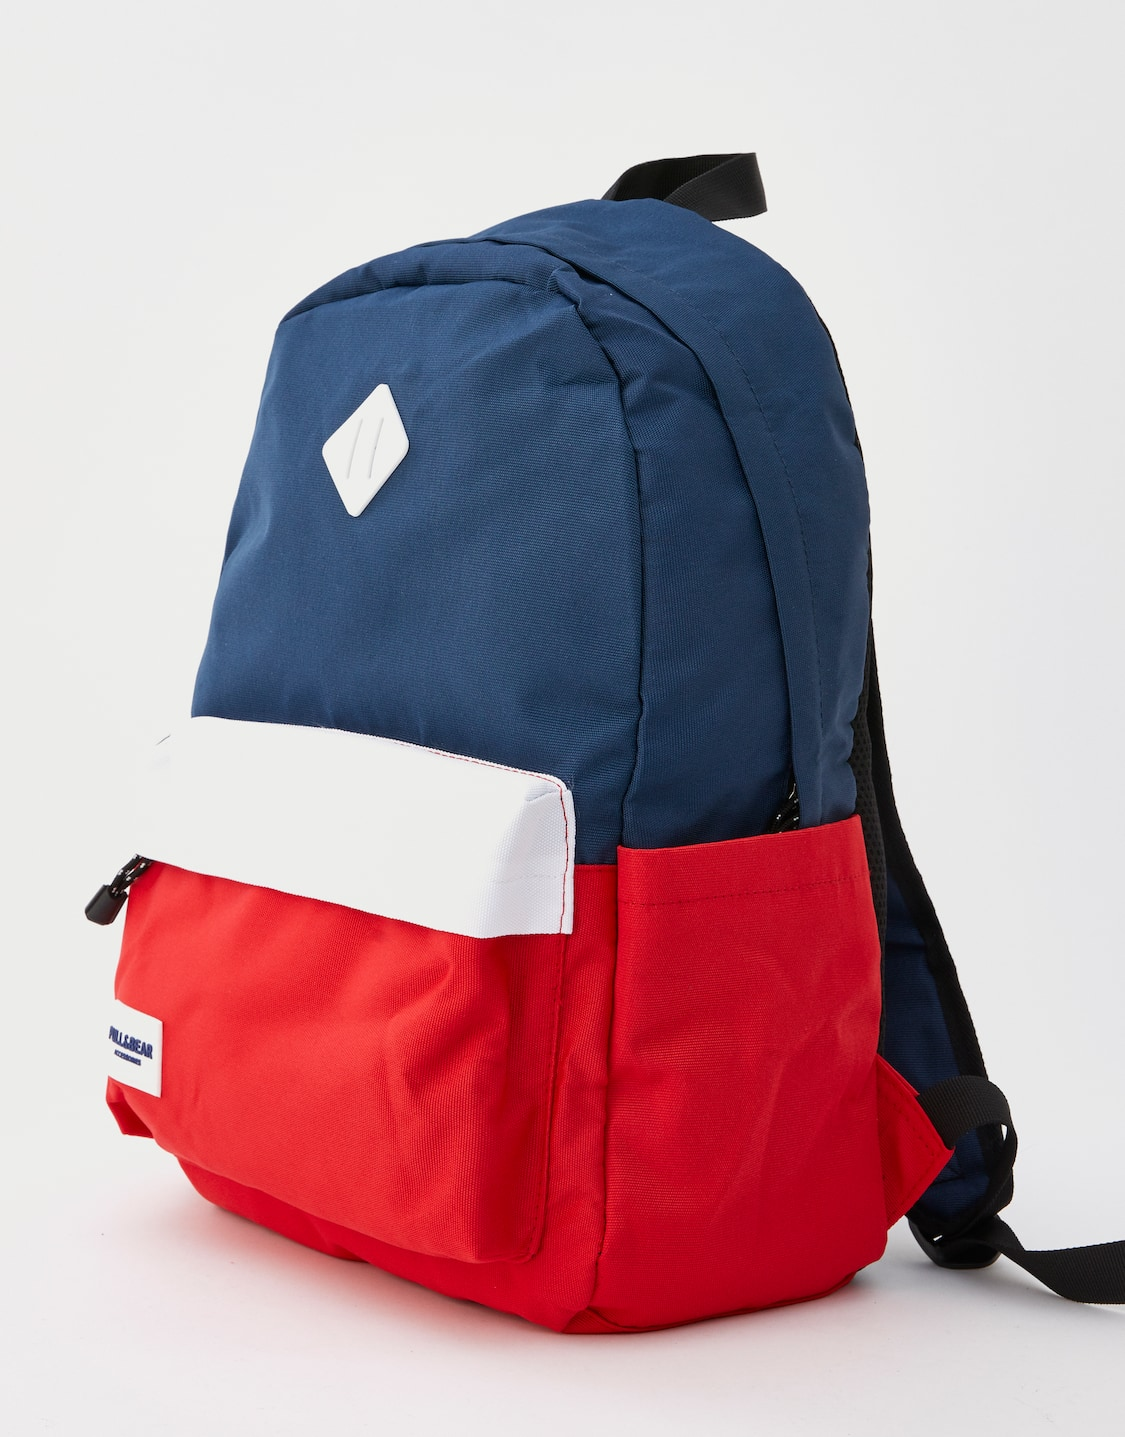 77c83d54648f Blue and red colour block backpack - pull bear